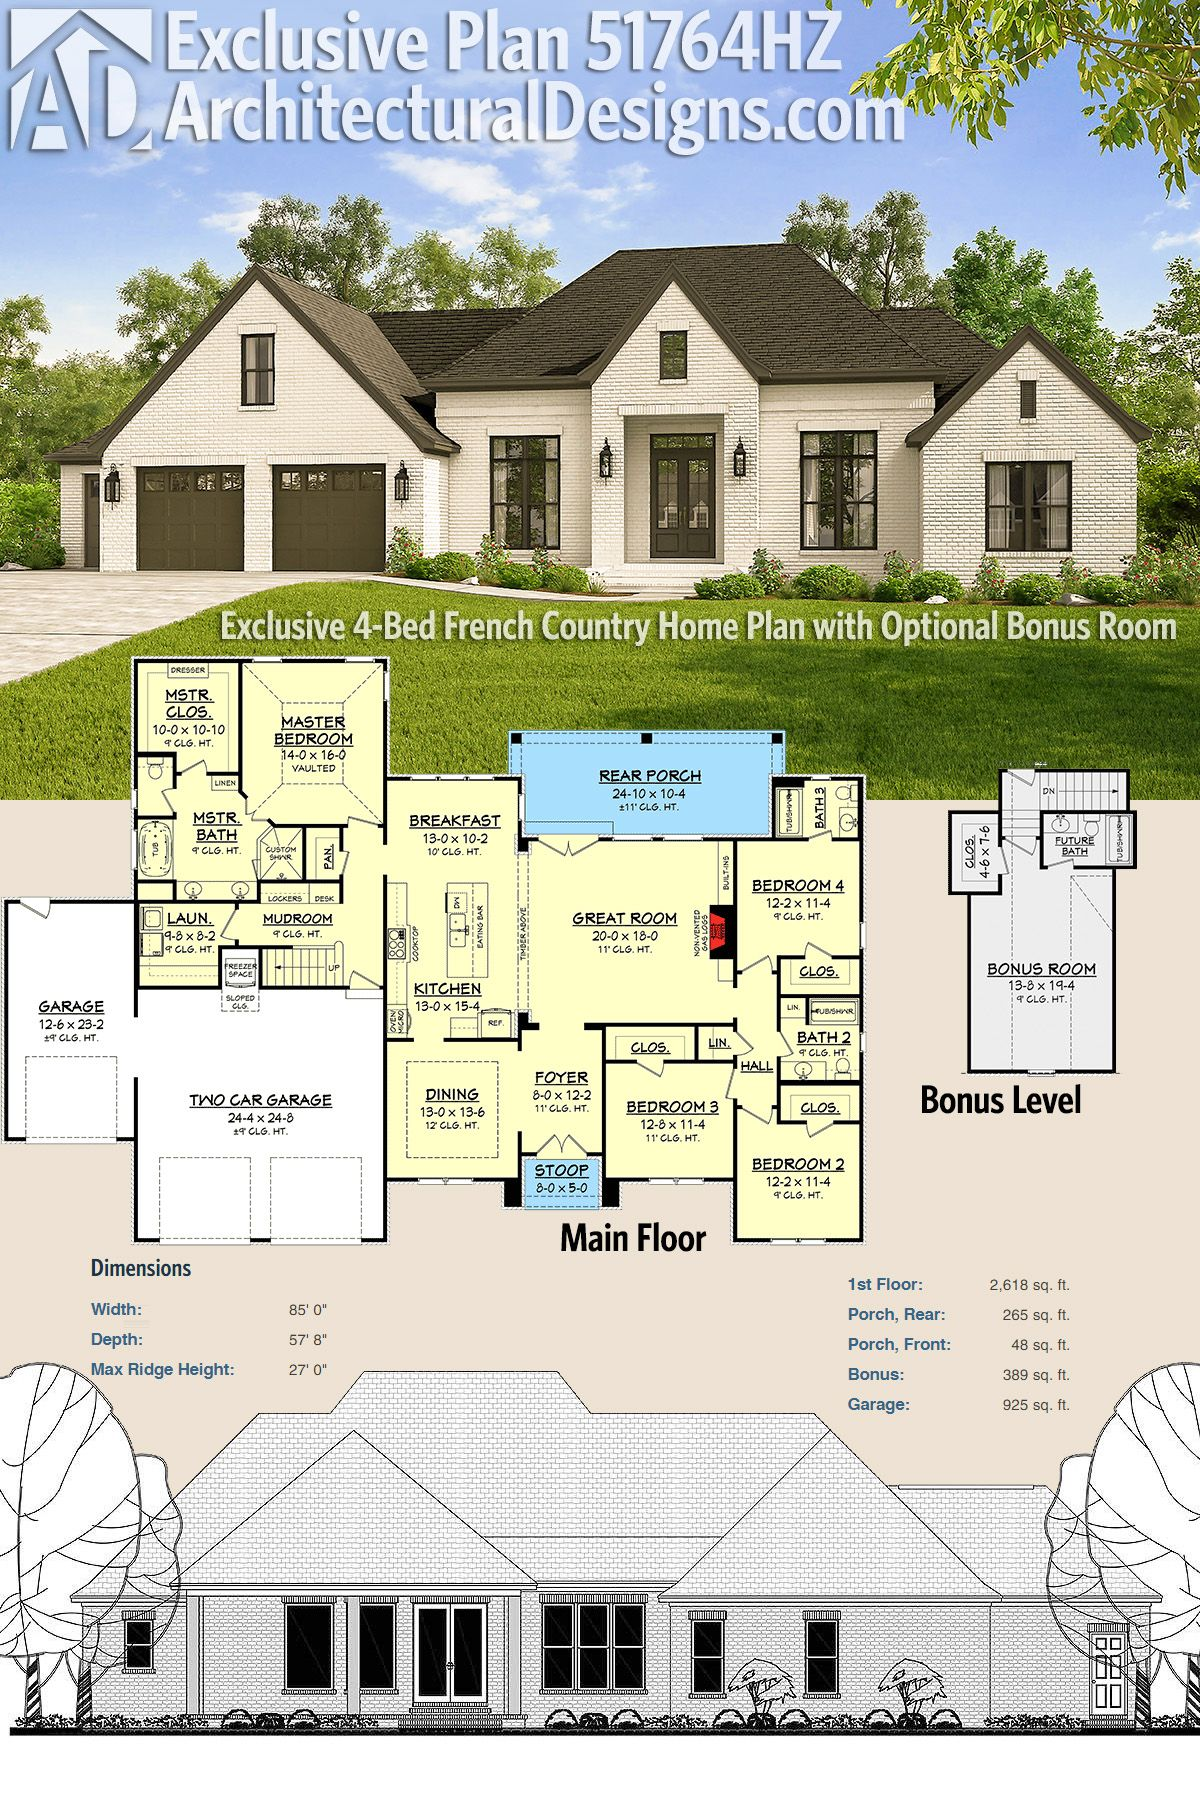 Plan 51764hz Exclusive 4 Bed French Country Home Plan With Optional Bonus Room French Country House French Country House Plans Country House Plans